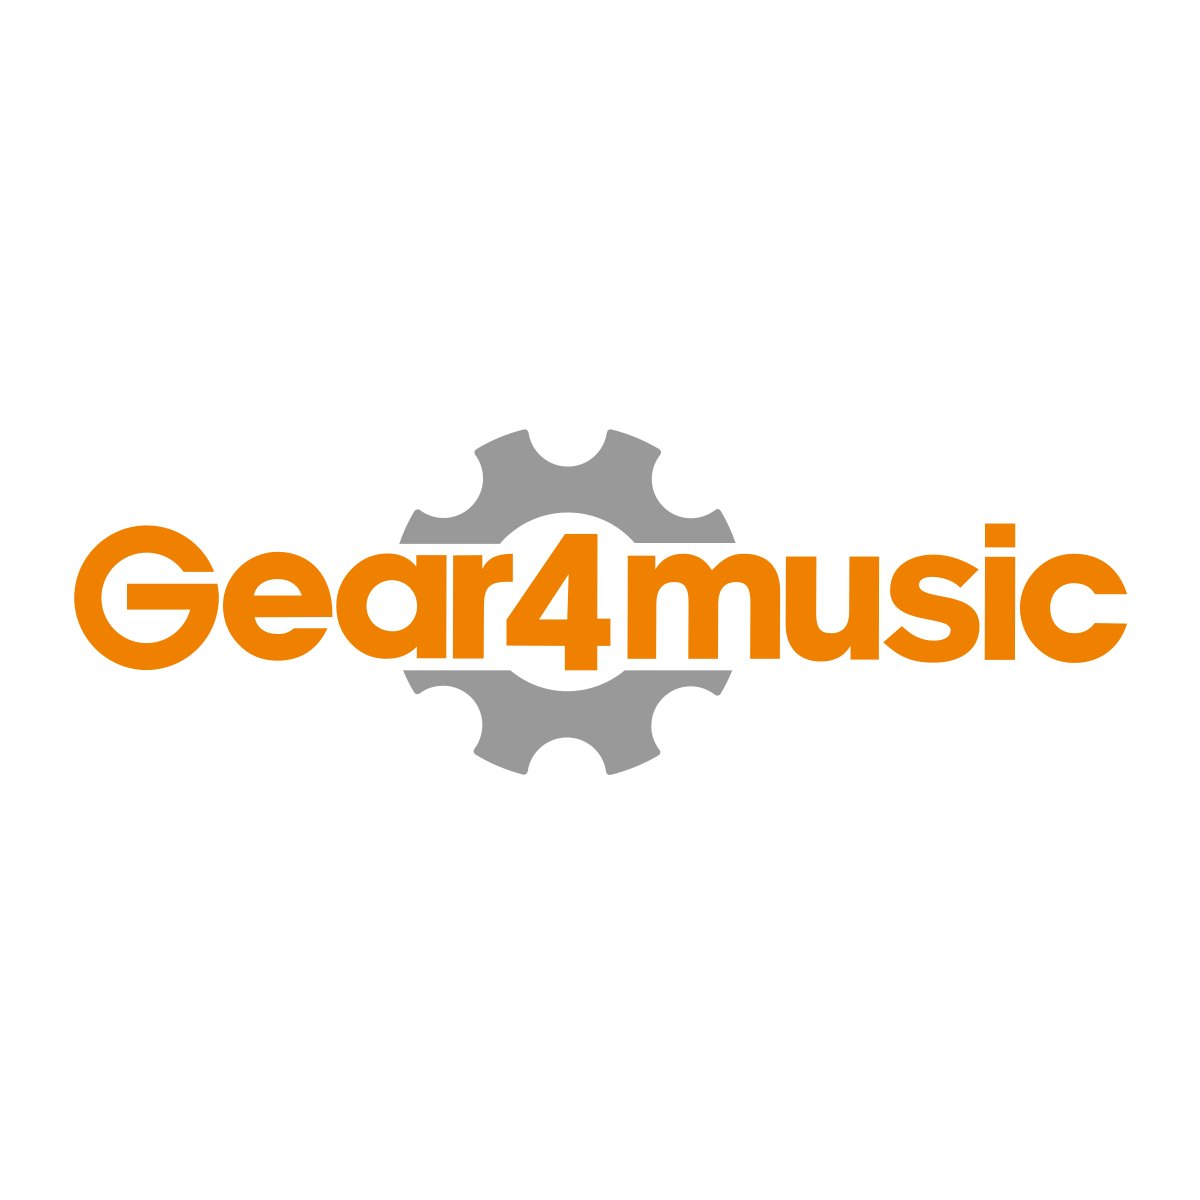 Baritone Saxophone by Gear4music, Gold